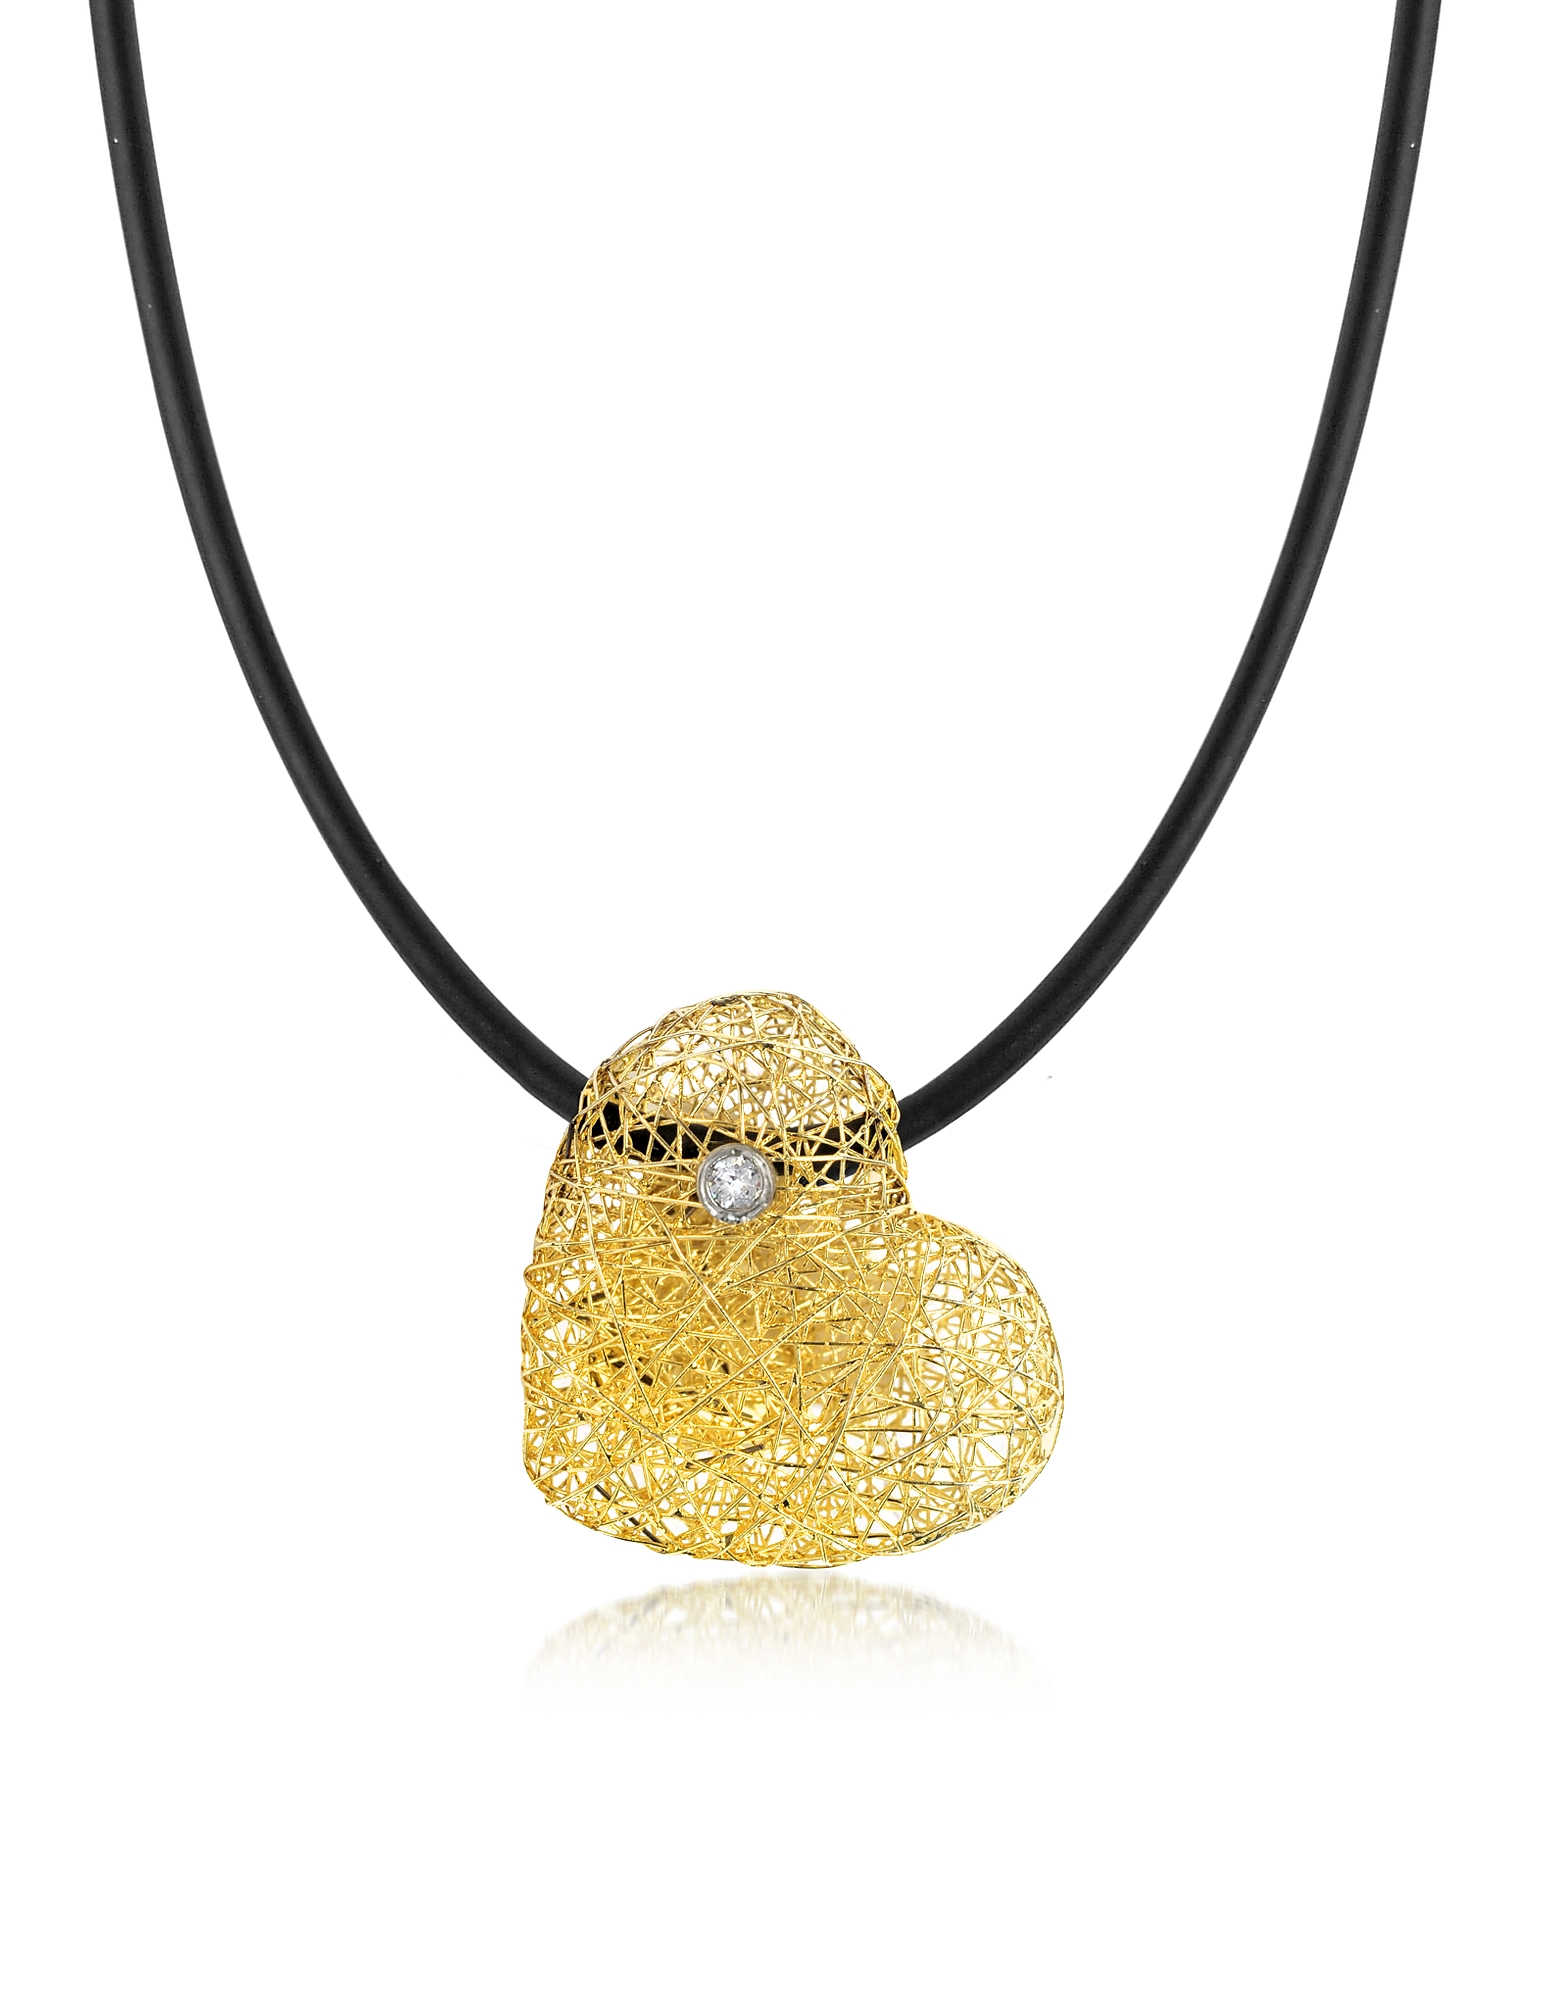 Orlando Orlandini Necklaces, Woven Light Yellow Gold Heart Pendant Necklace w/Diamond